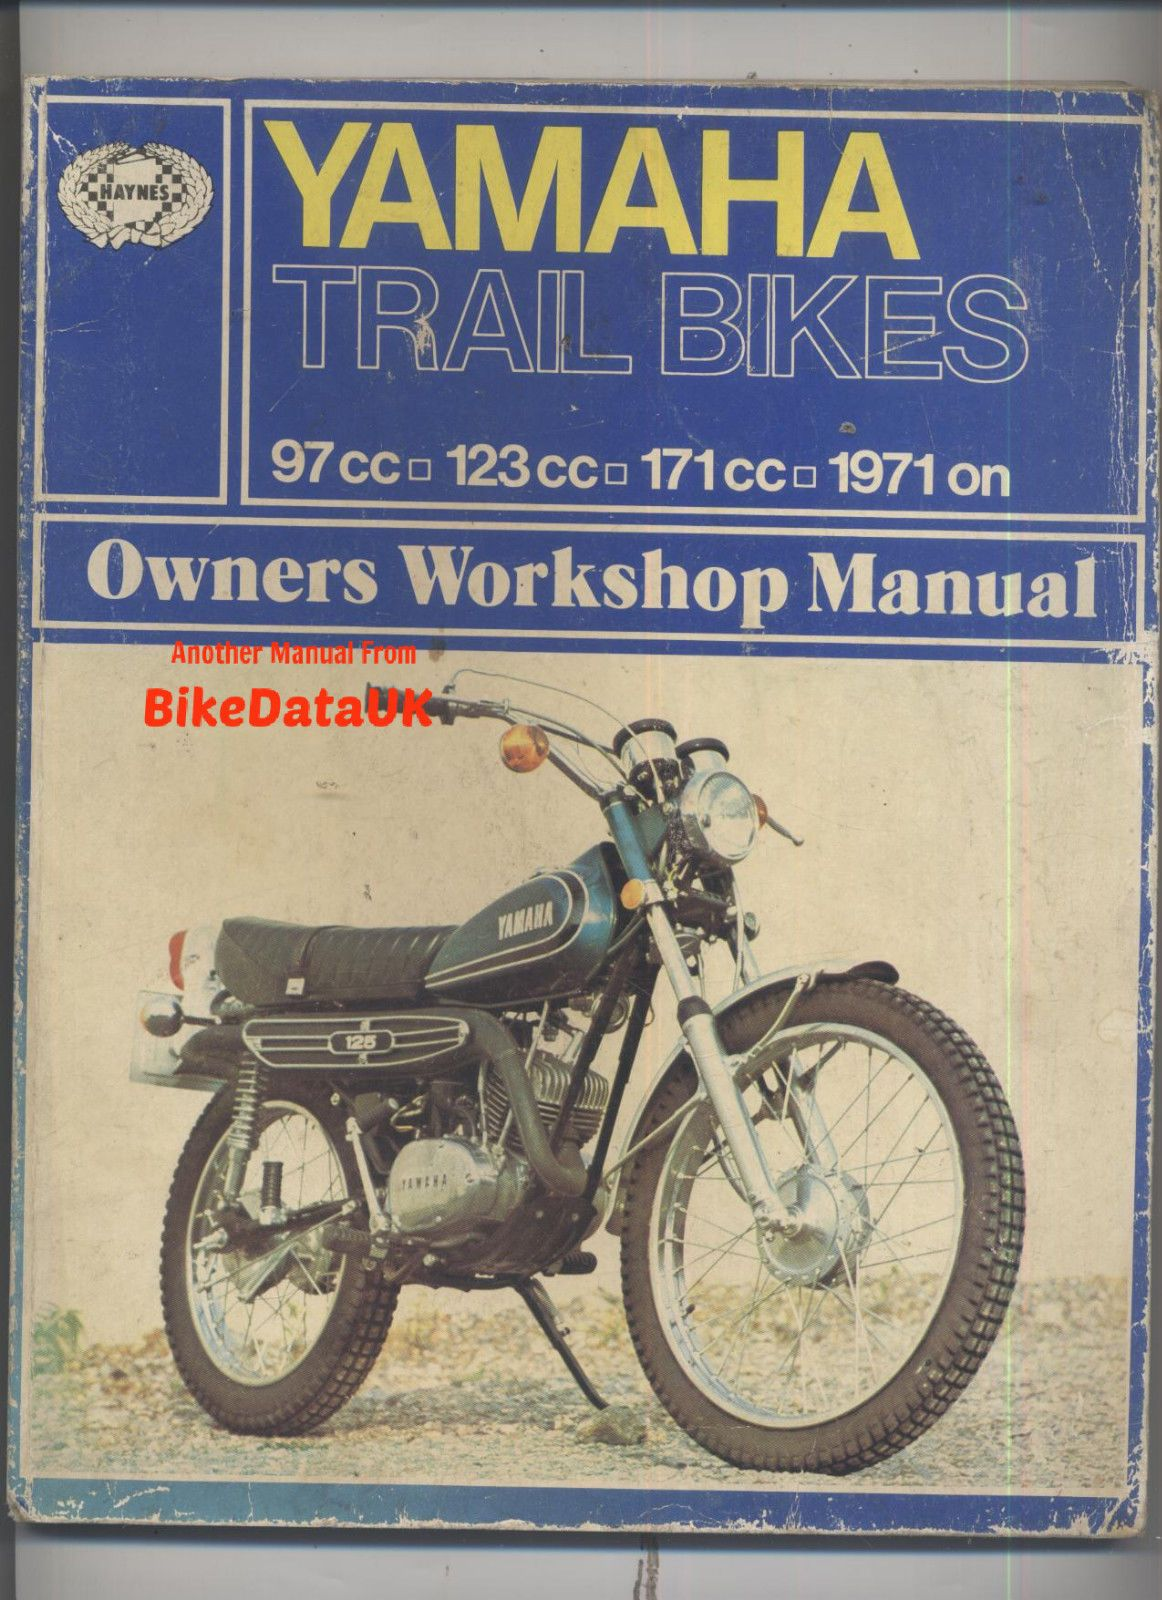 Yamaha DT175 DT125 71 74 Haynes Manual LT2 AT1 CT1 DT 175 125 100 Twin  Shock | eBay